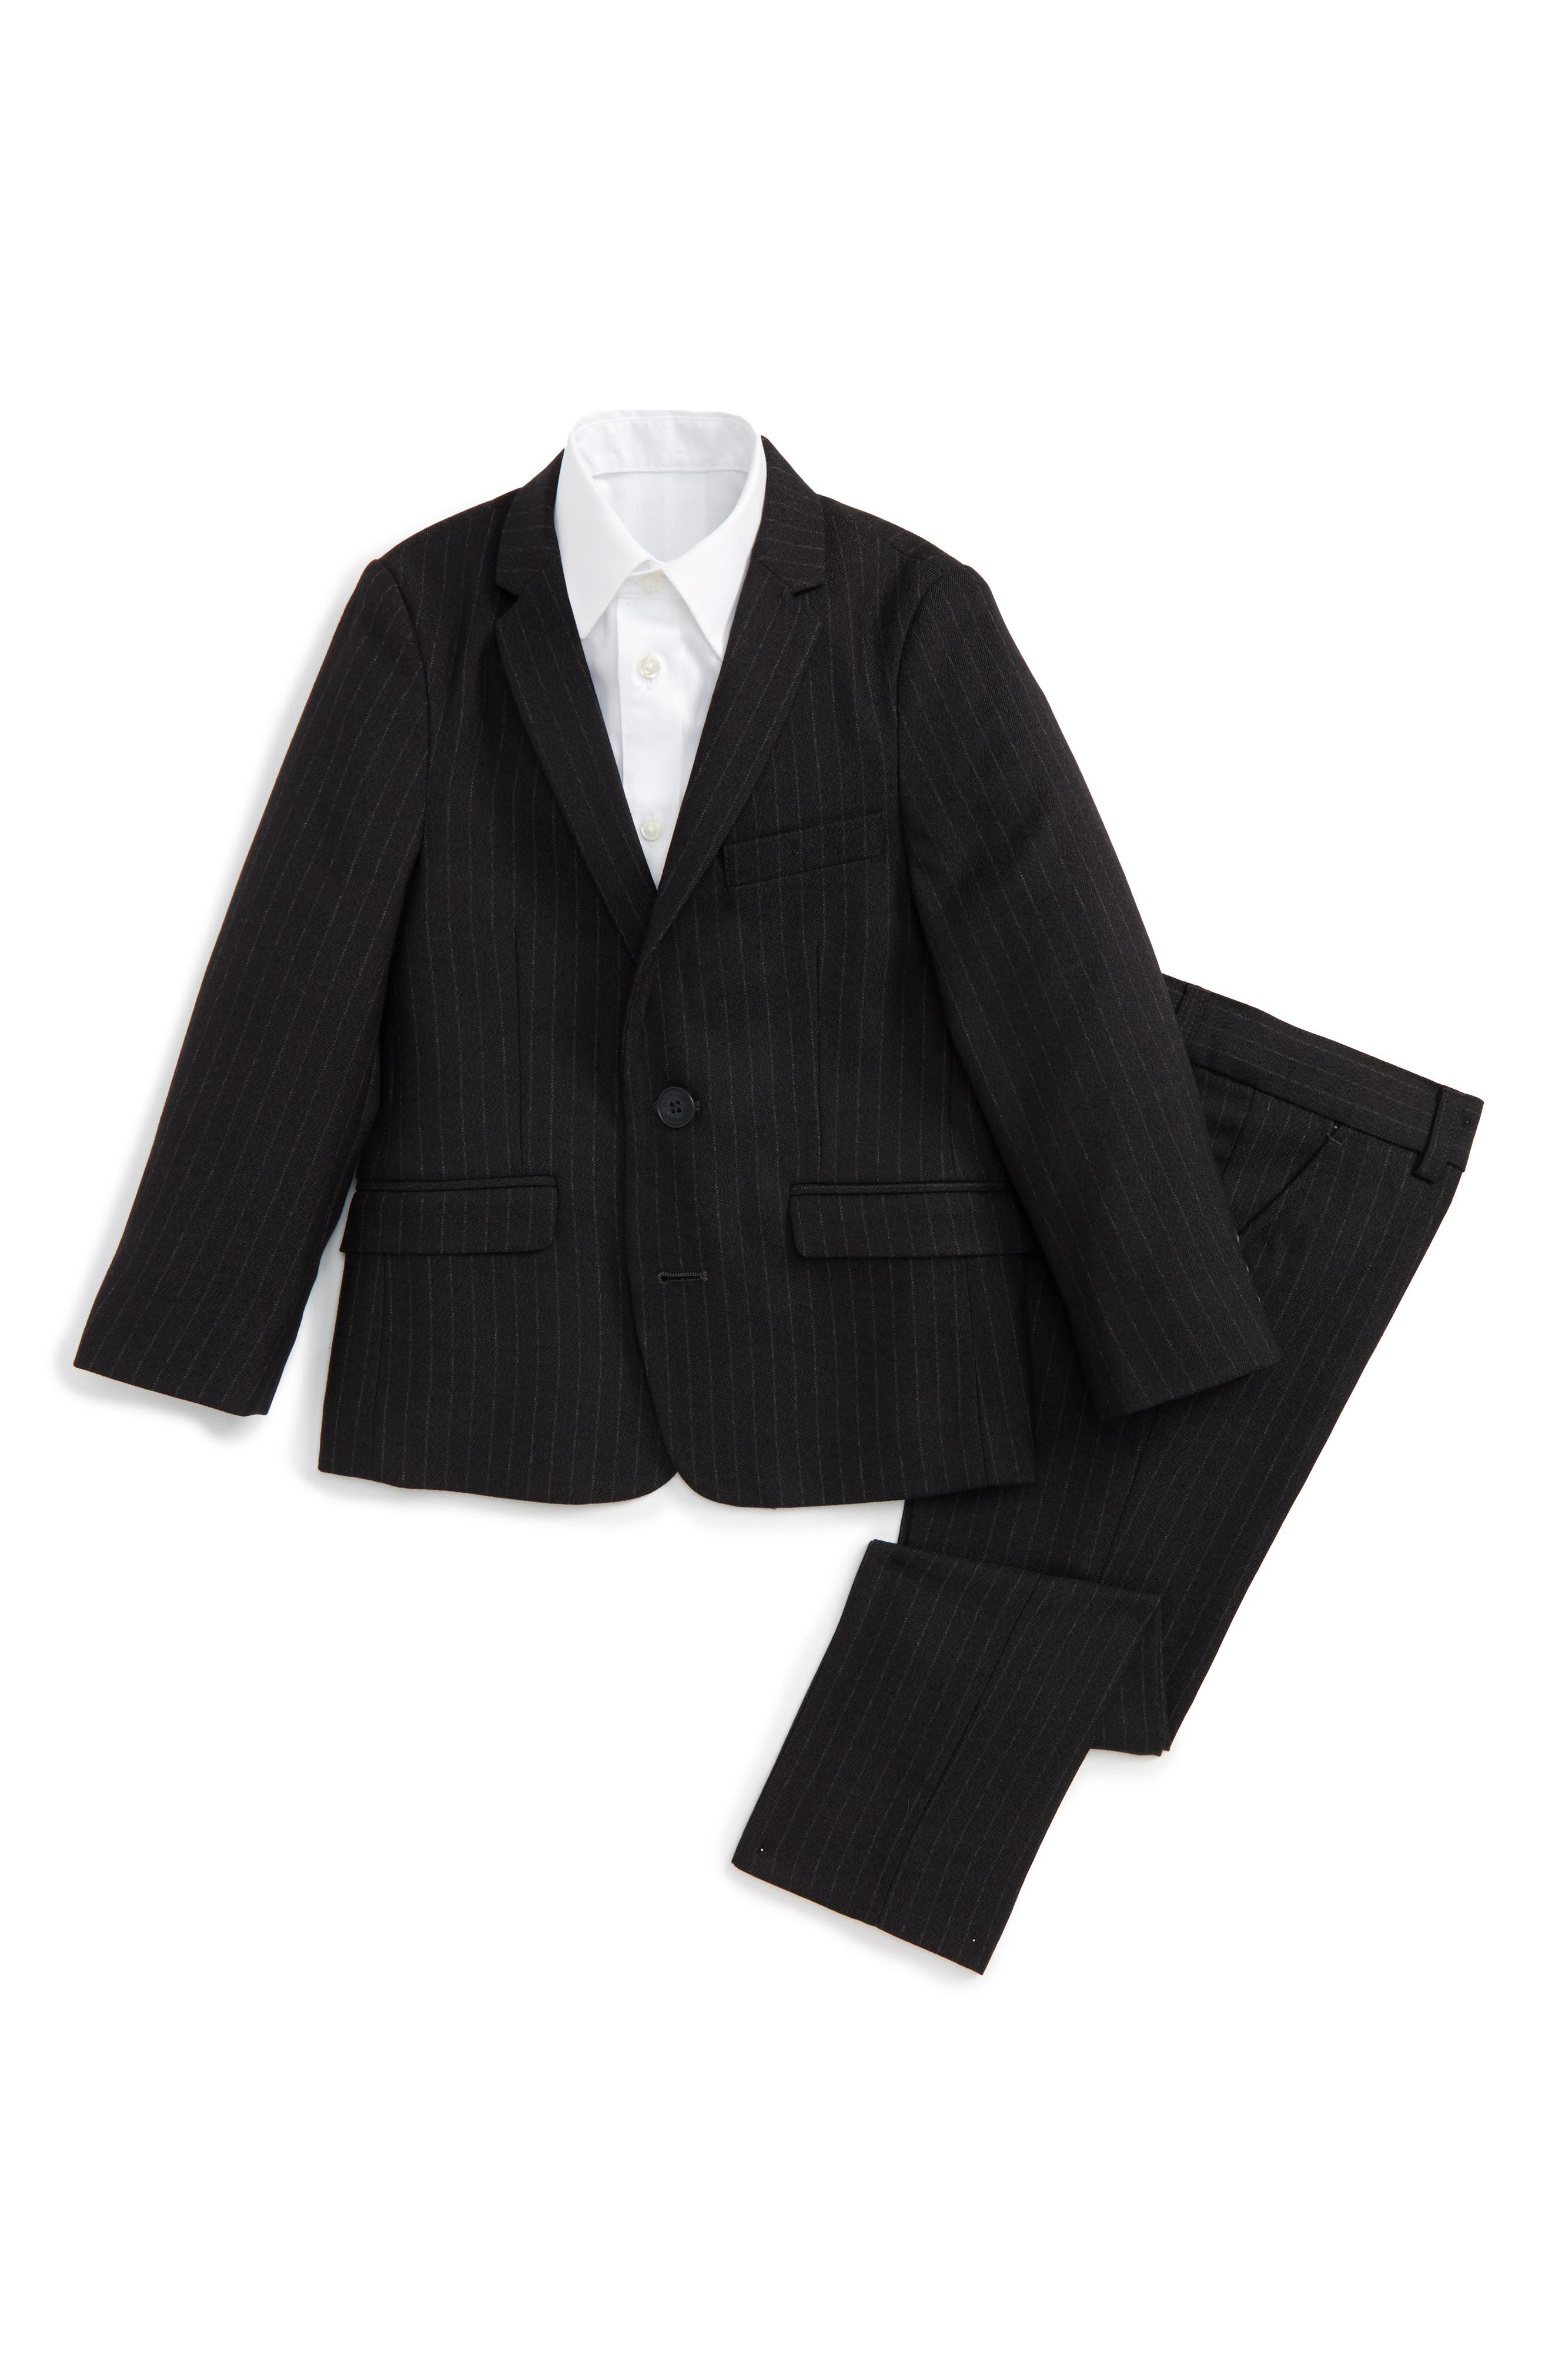 Mod Pinstripe Suit,                             Main thumbnail 1, color,                             020